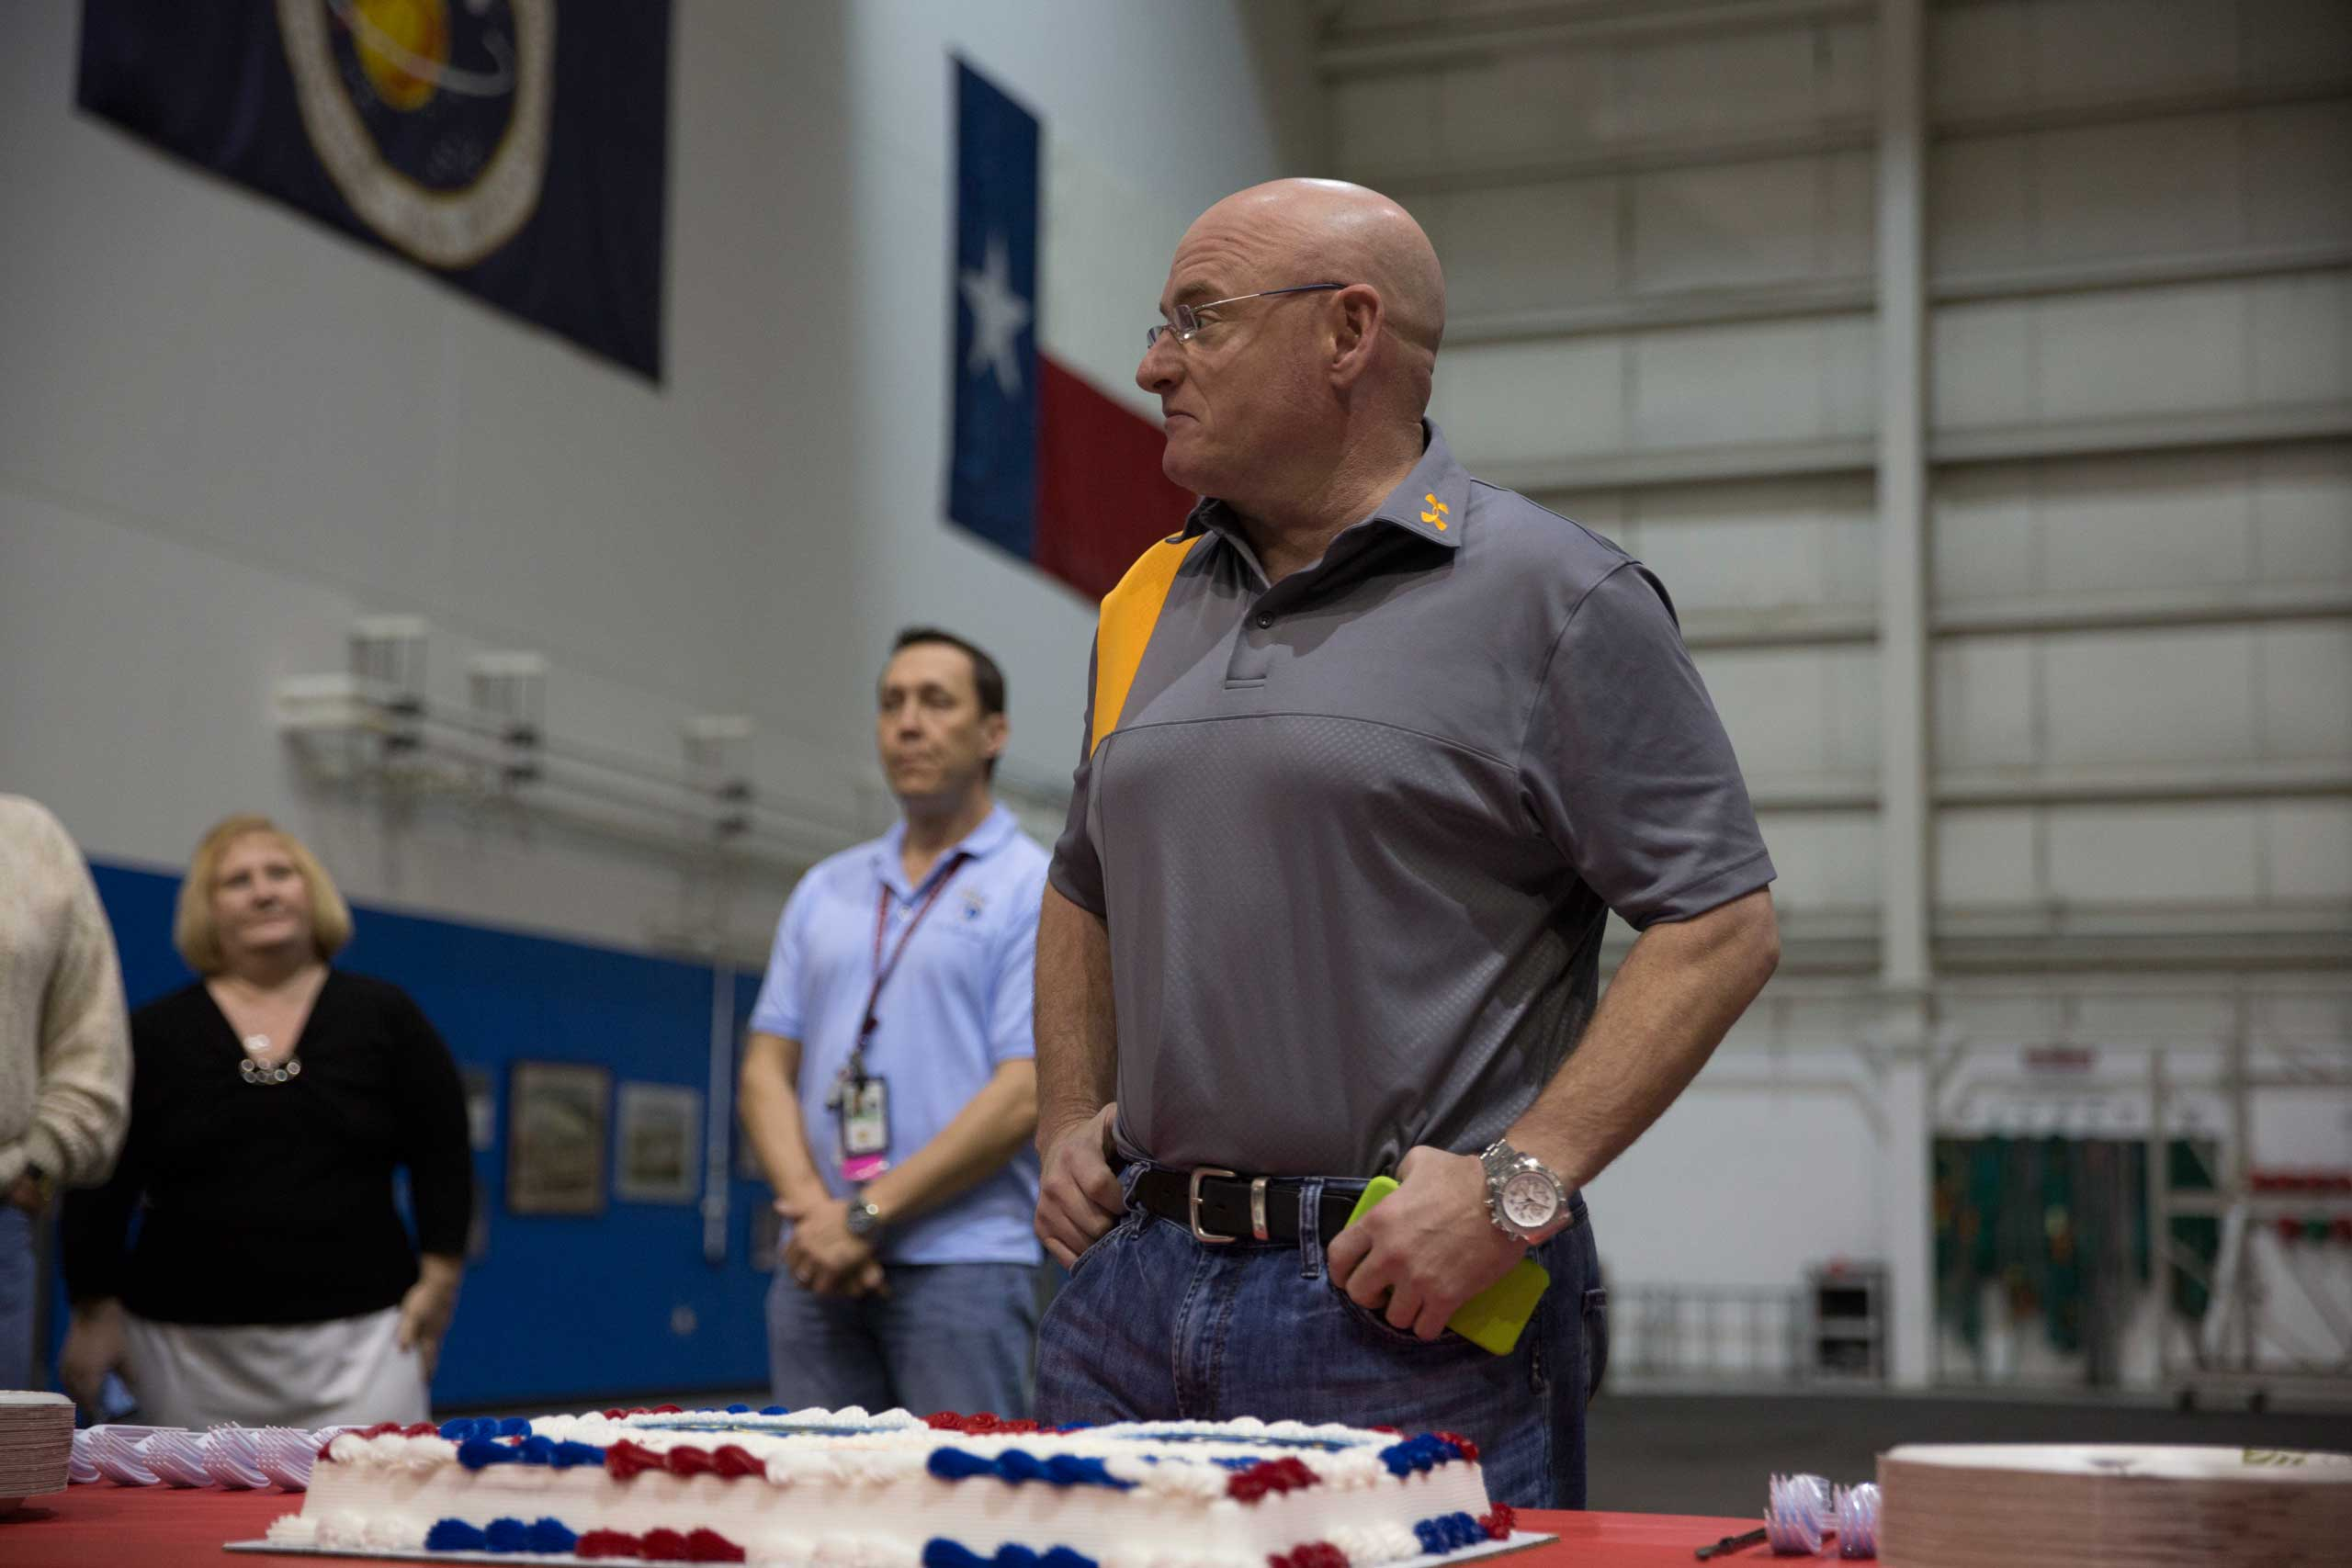 Following the successful completion of his final training in the pool, the staff at the Neutral Buoyancy Lab in Houston presented Scott with a cake wishing him well on the mission.